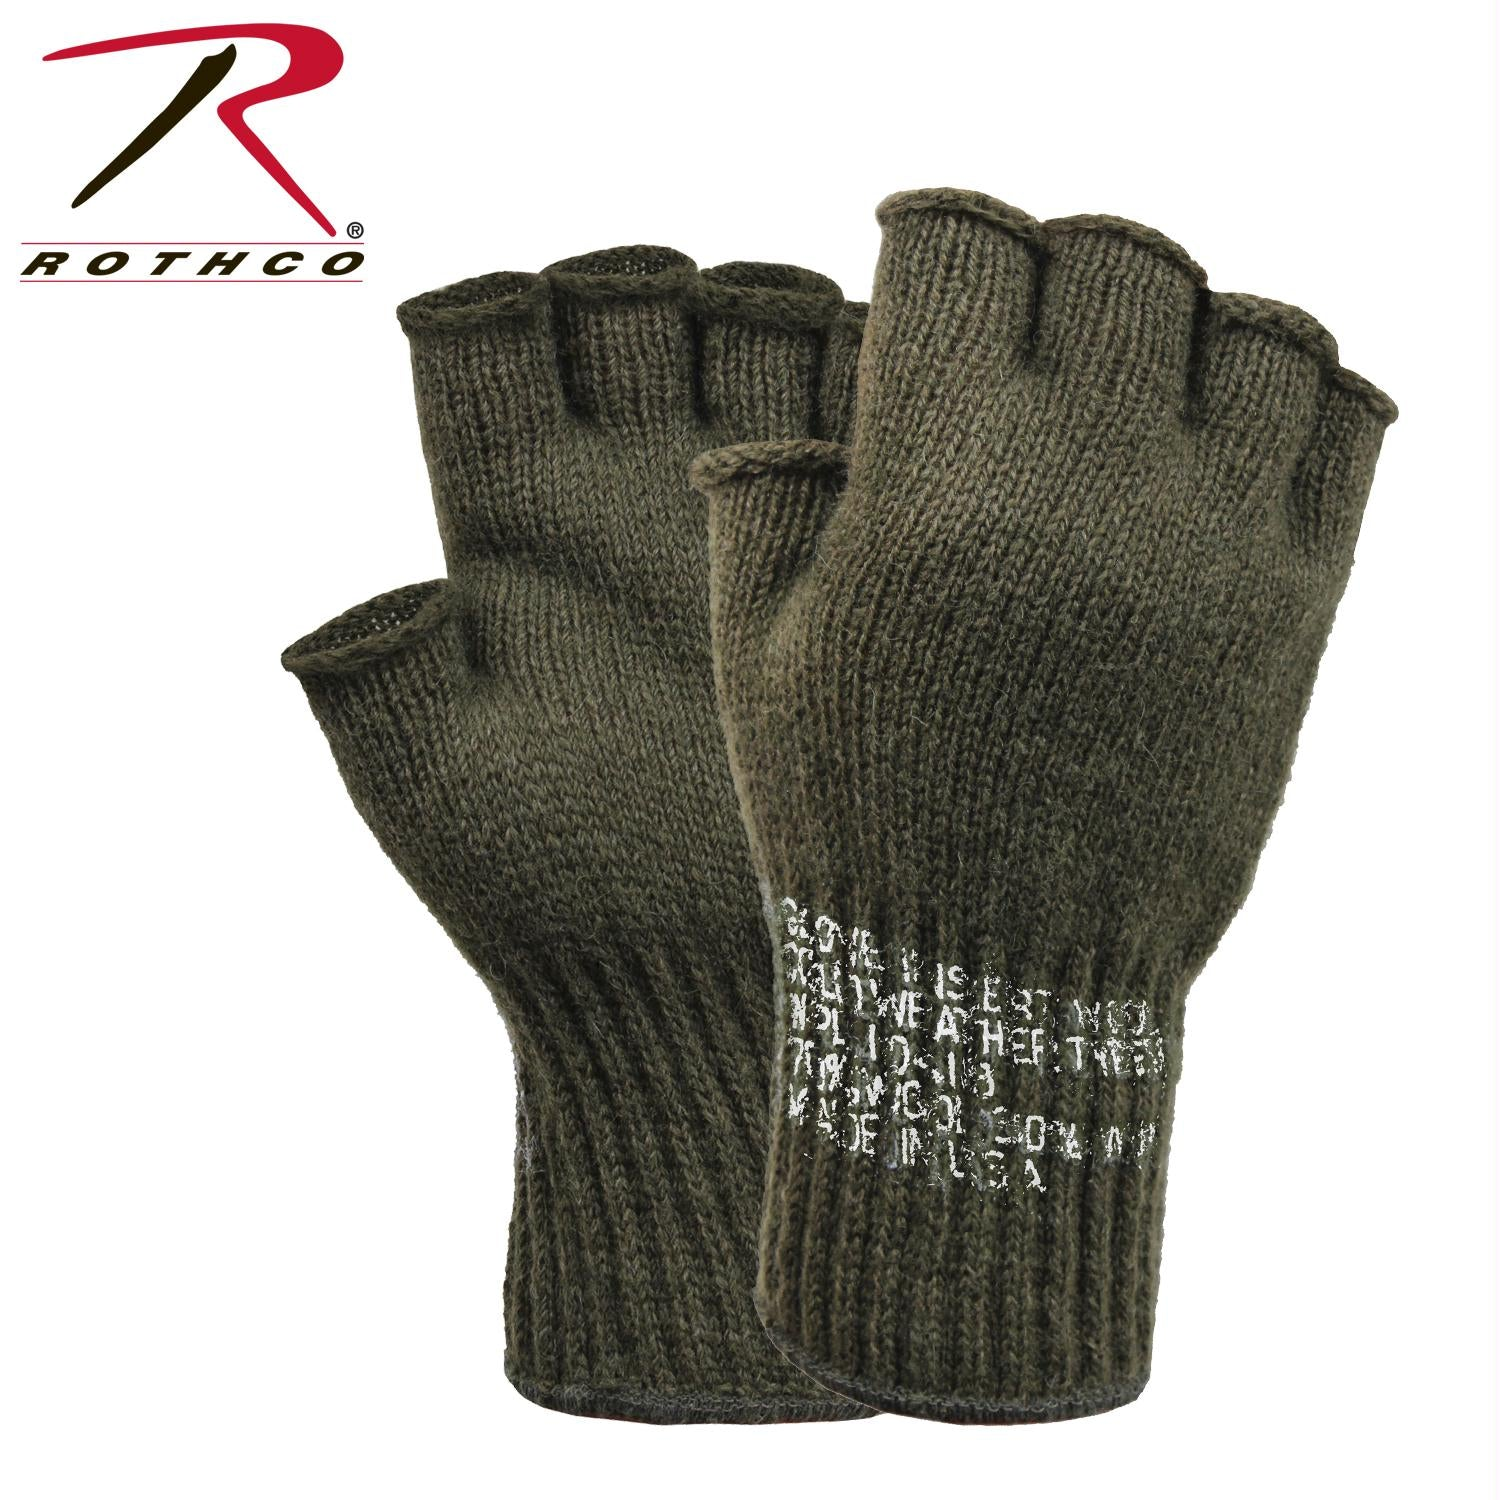 Rothco Fingerless Wool Gloves - Olive Drab